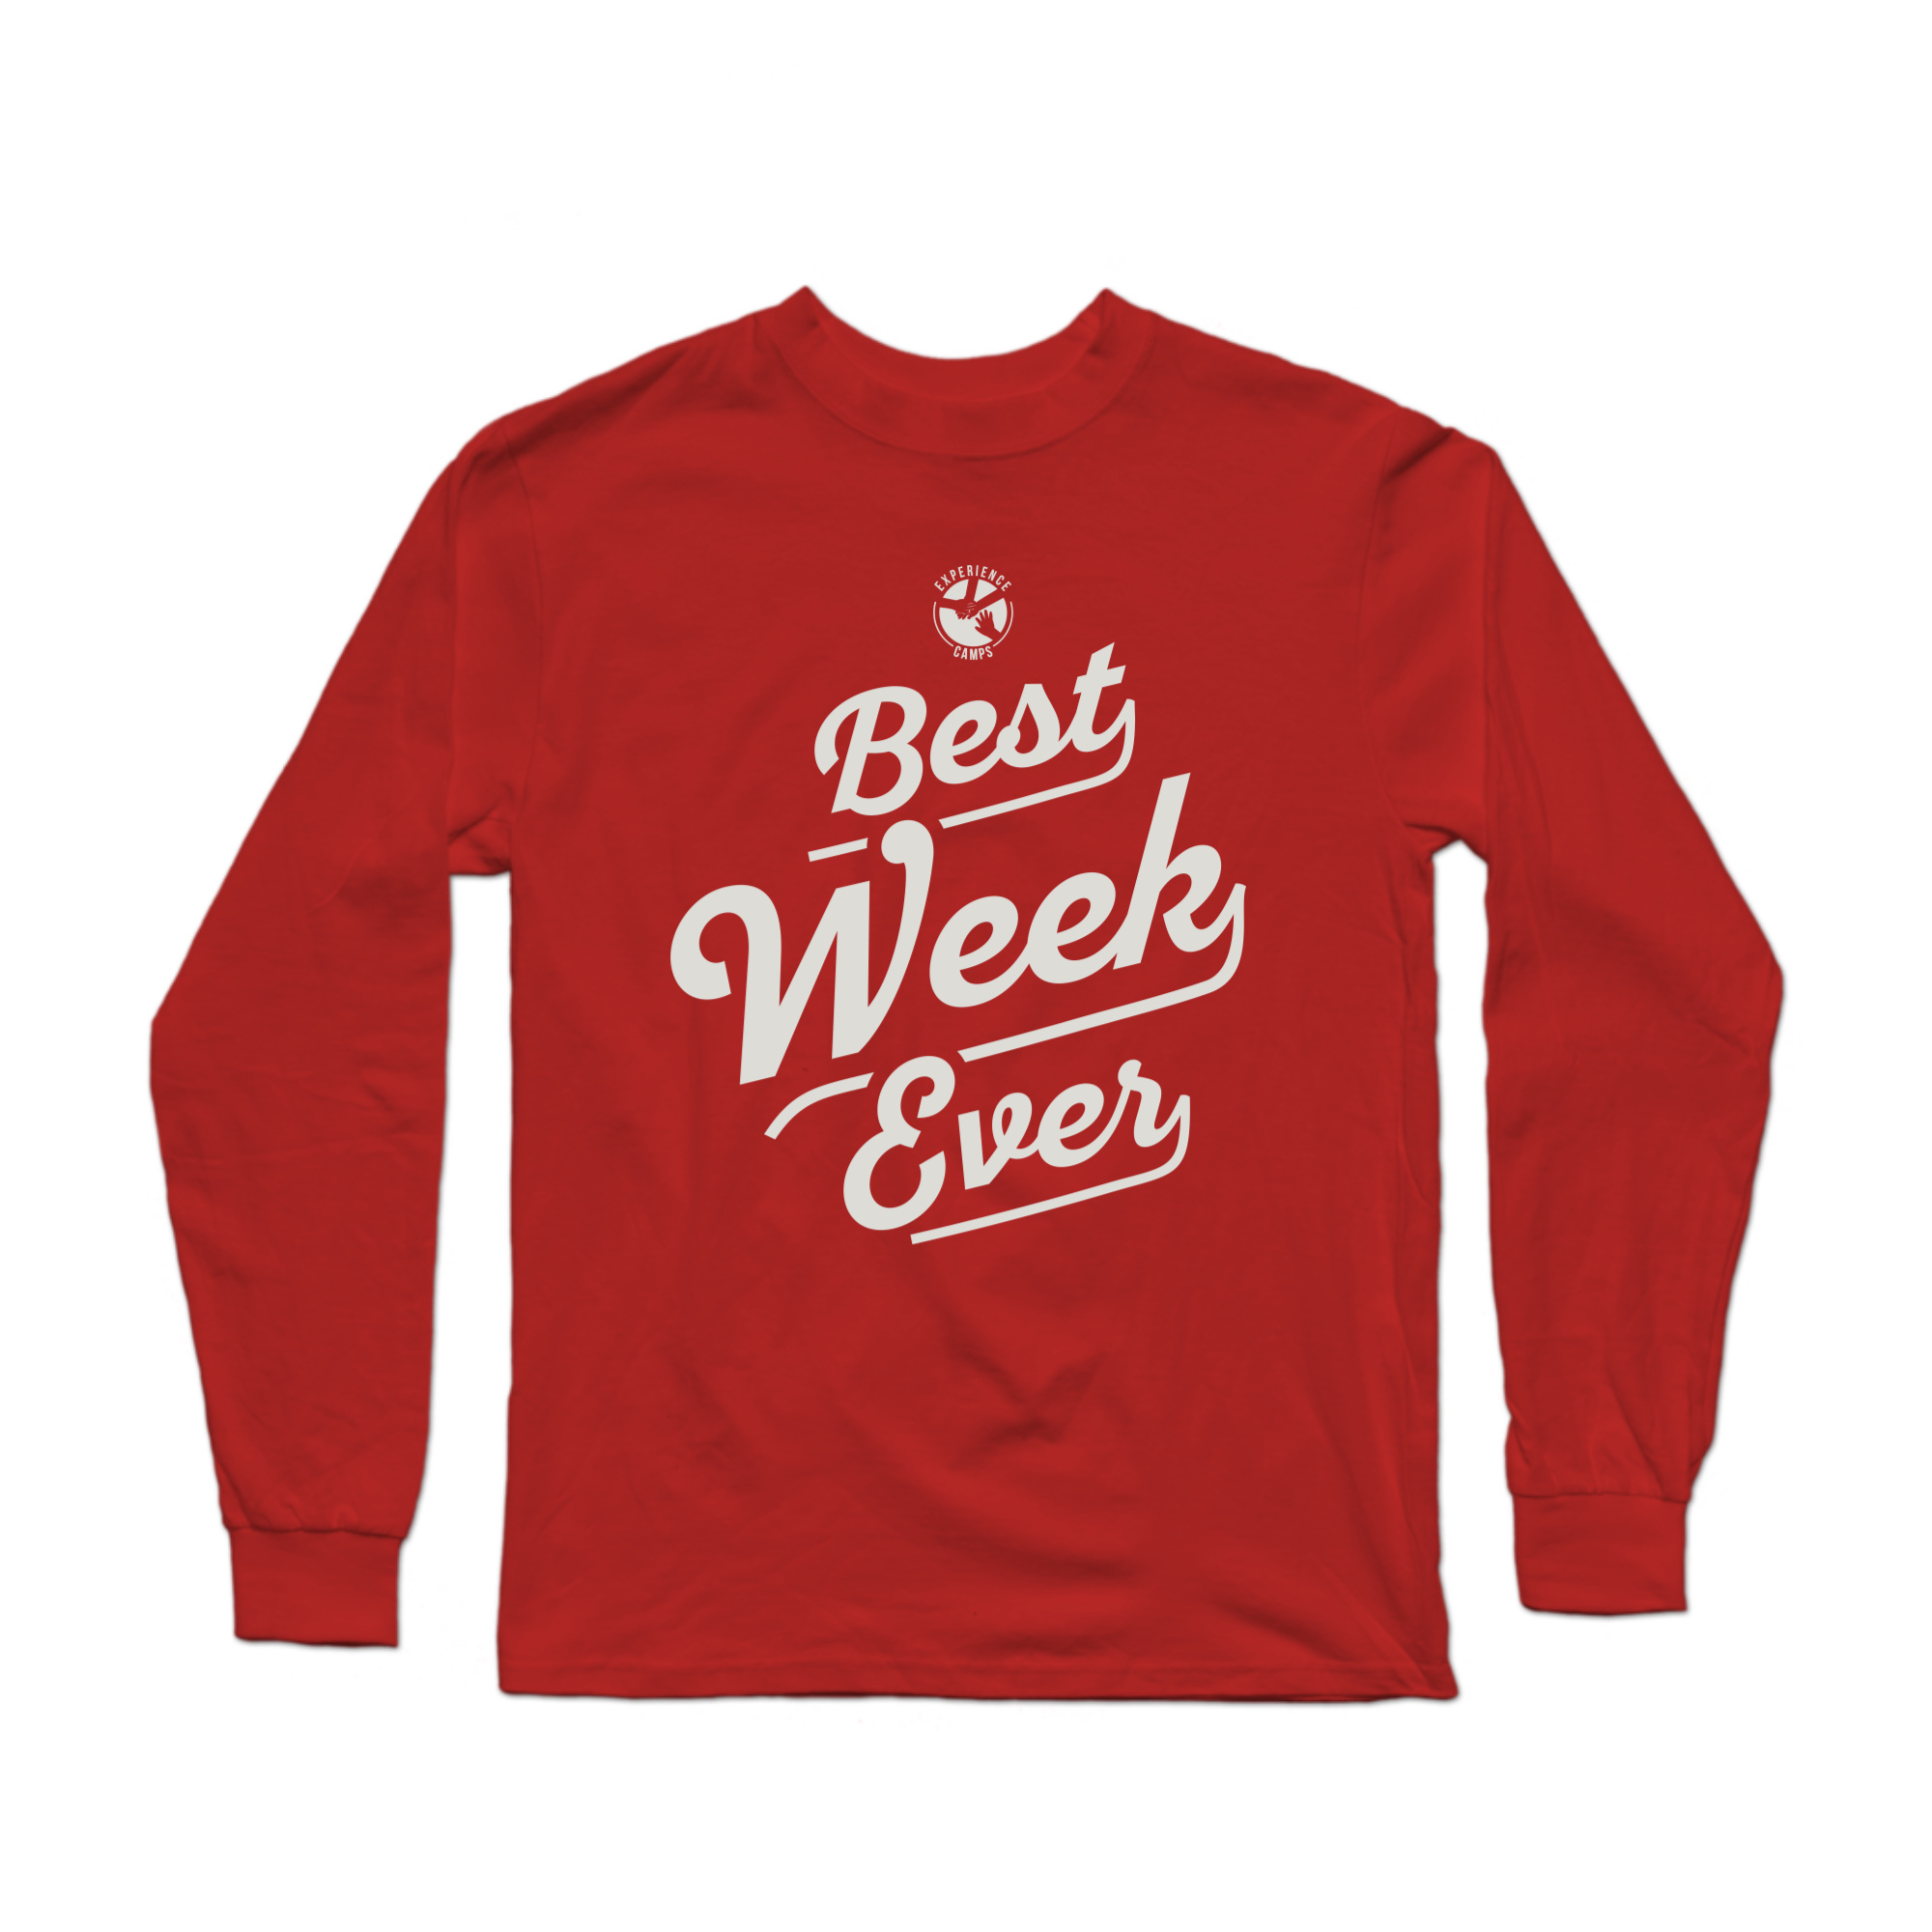 Best Week Ever Longsleeve Shirt